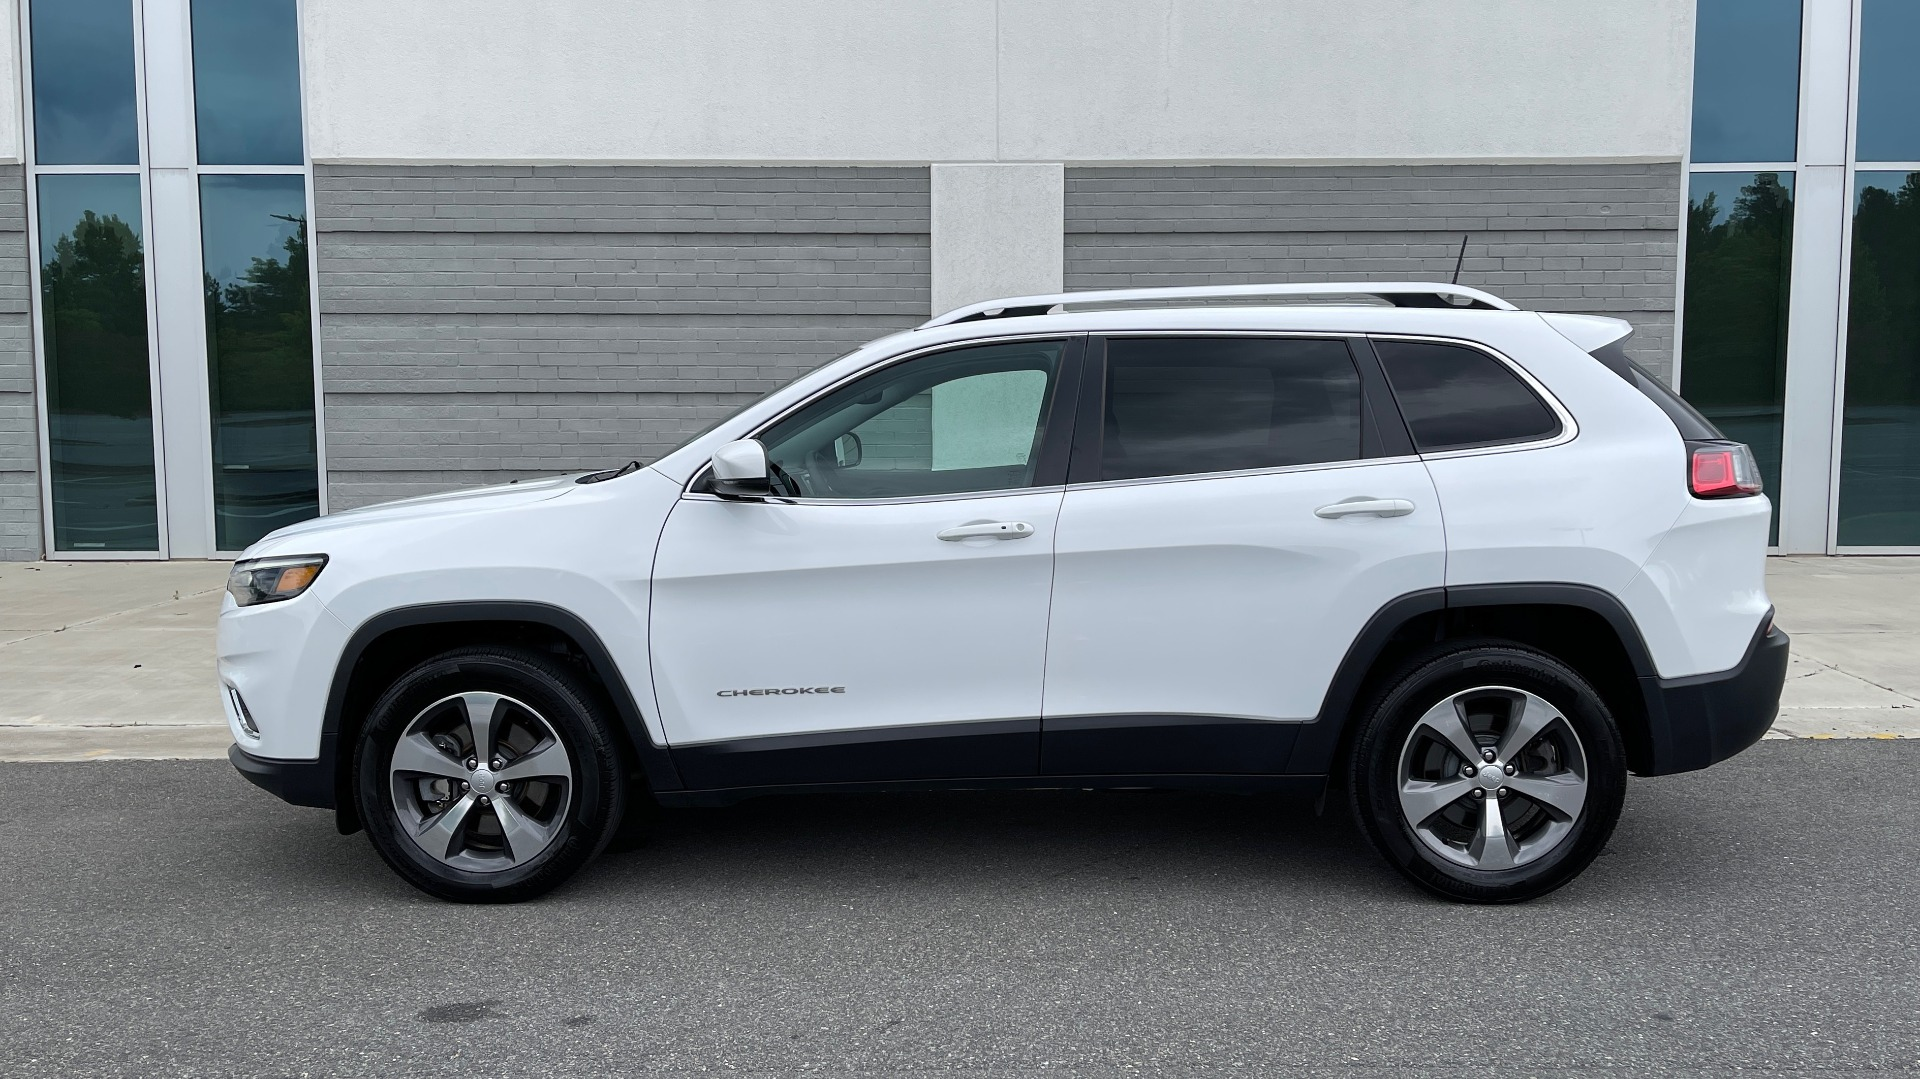 Used 2019 Jeep CHEROKEE LIMITED 4X4 / KEYLESS-GO / BLIND SPOT AND CROSS PATH / REMOTE START / REARV for sale $26,995 at Formula Imports in Charlotte NC 28227 6